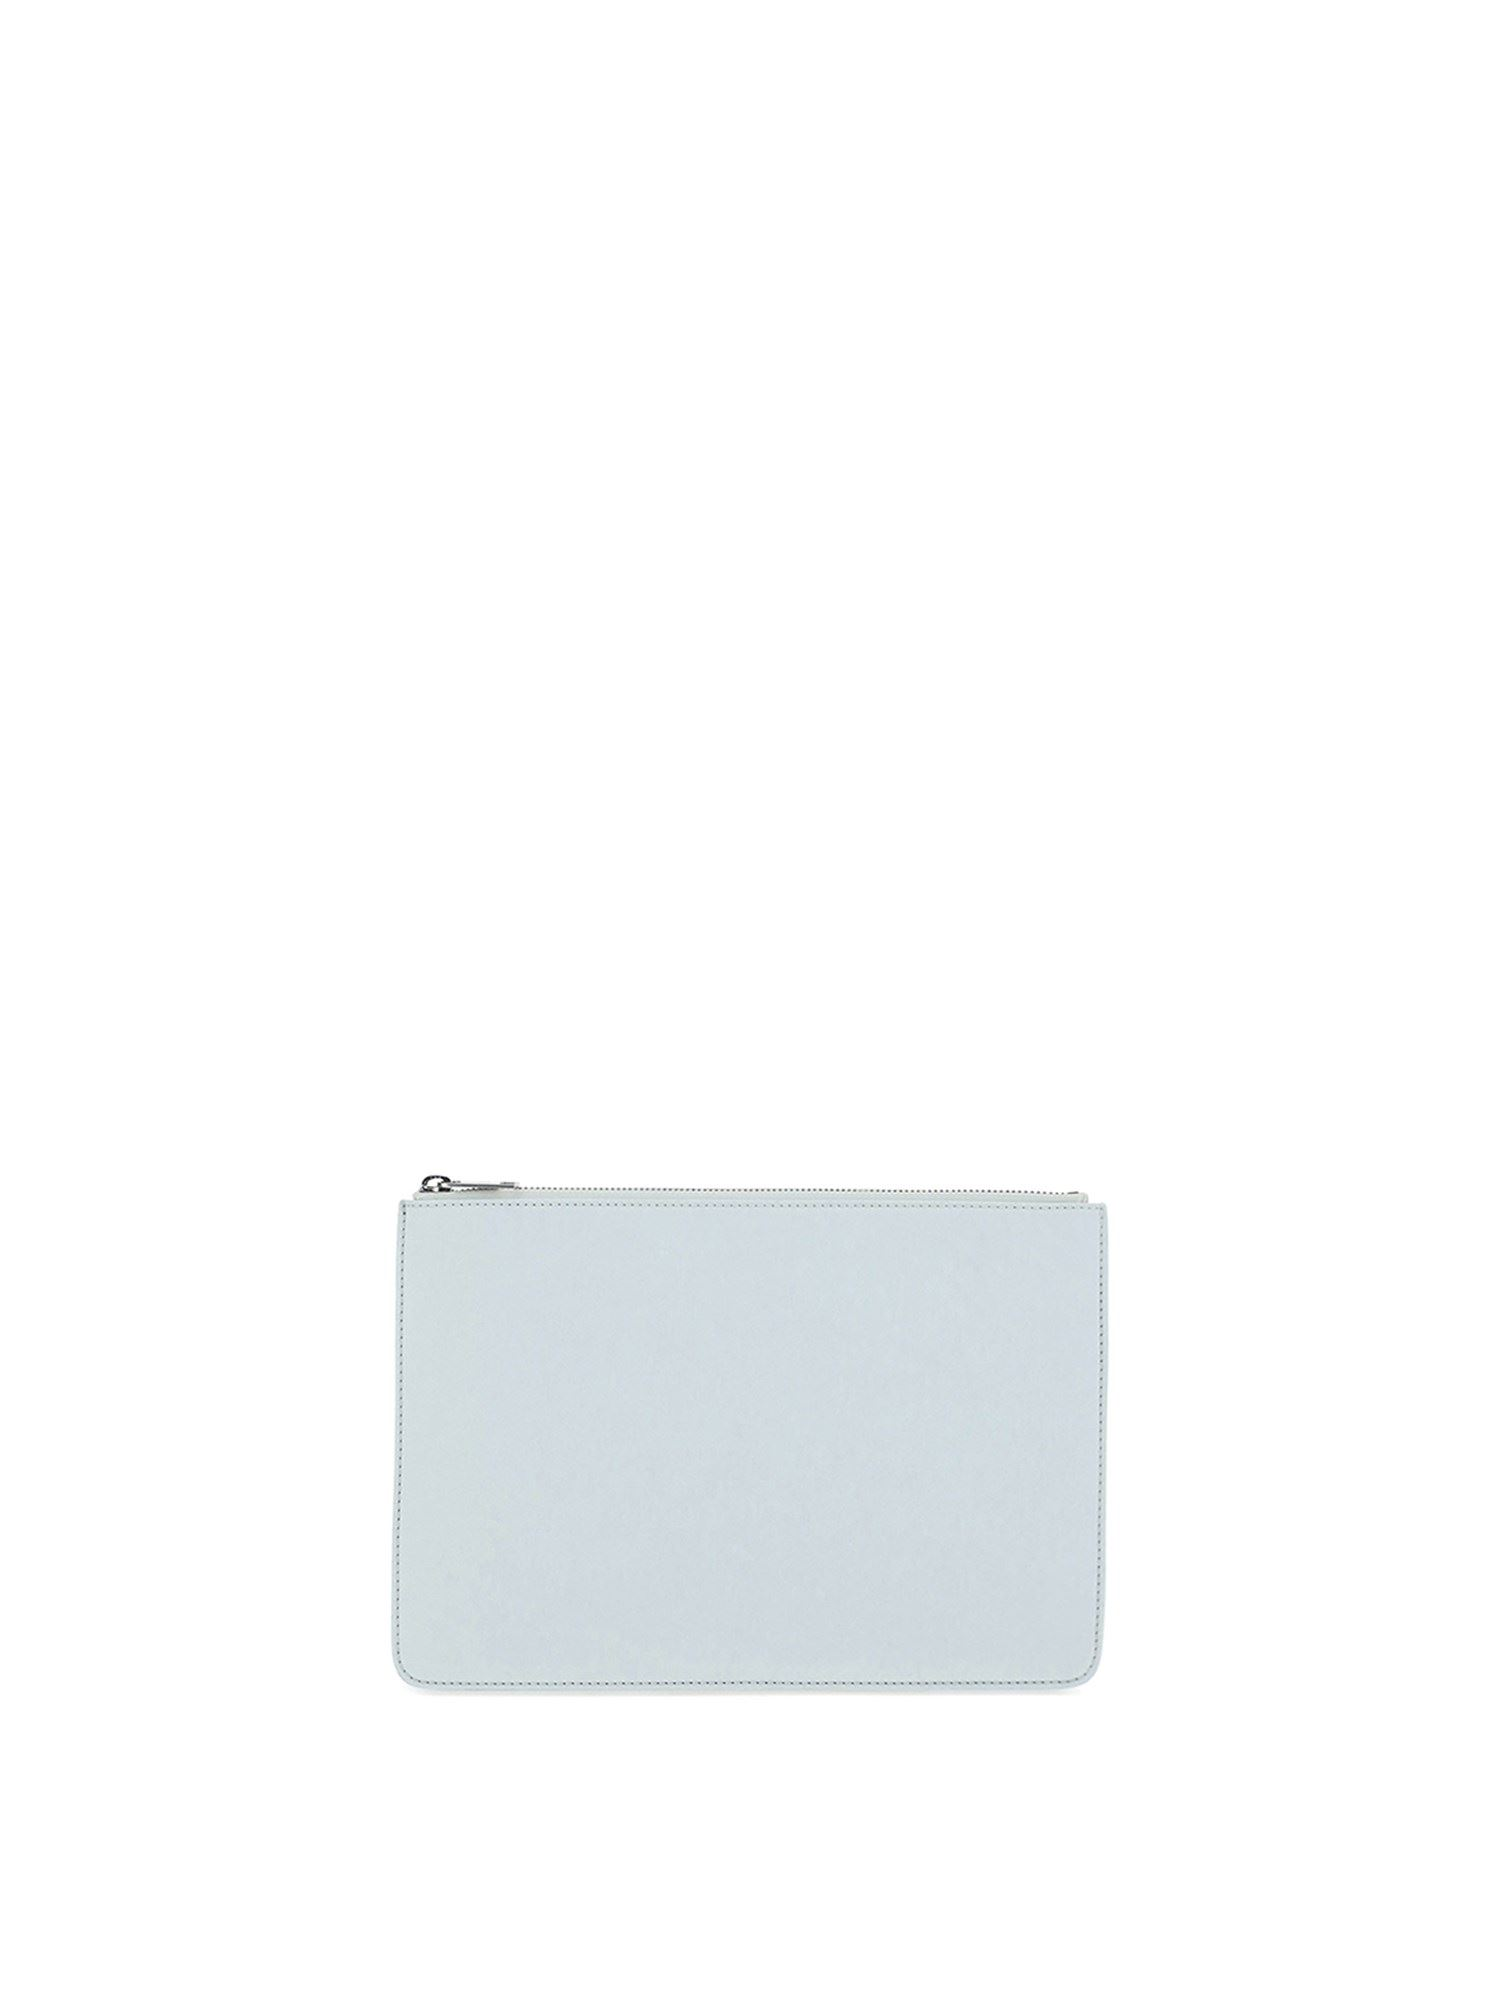 Maison Margiela LEATHER POUCH IN WHITE